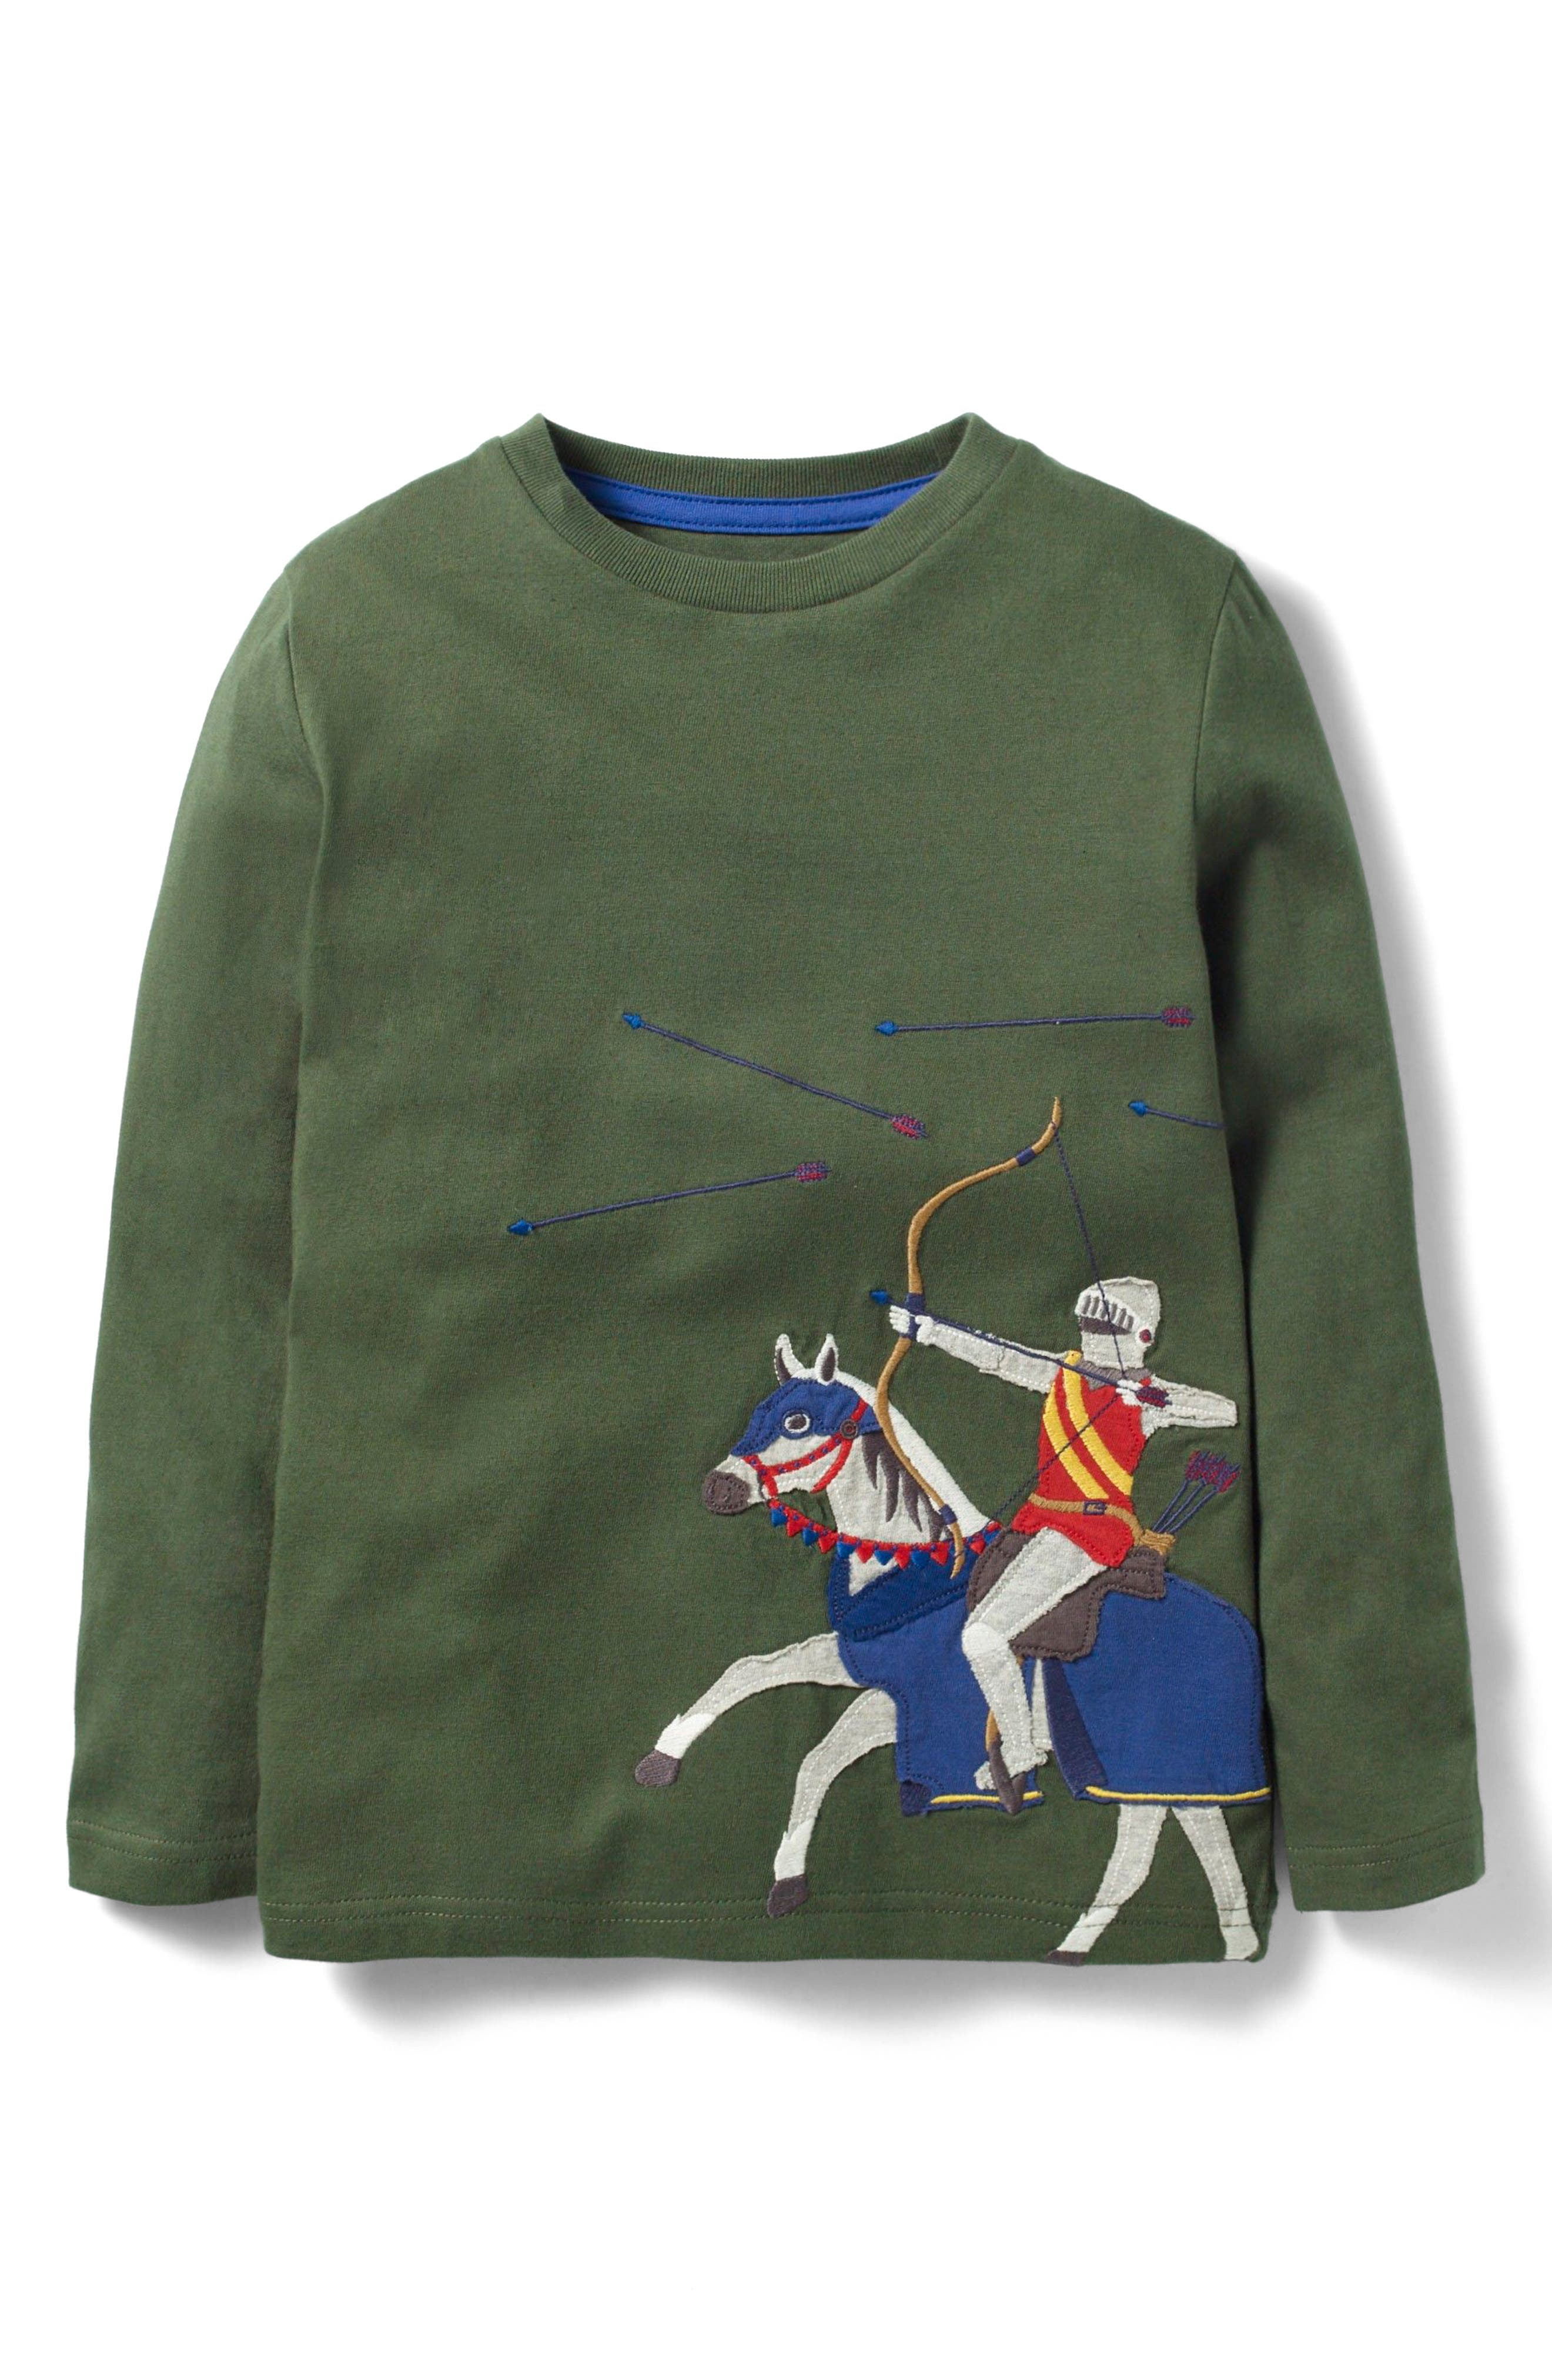 Alternate Image 1 Selected - Mini Boden Noble Knight Embroidered T-Shirt (Toddler Boys, Little Boys & Big Boys)